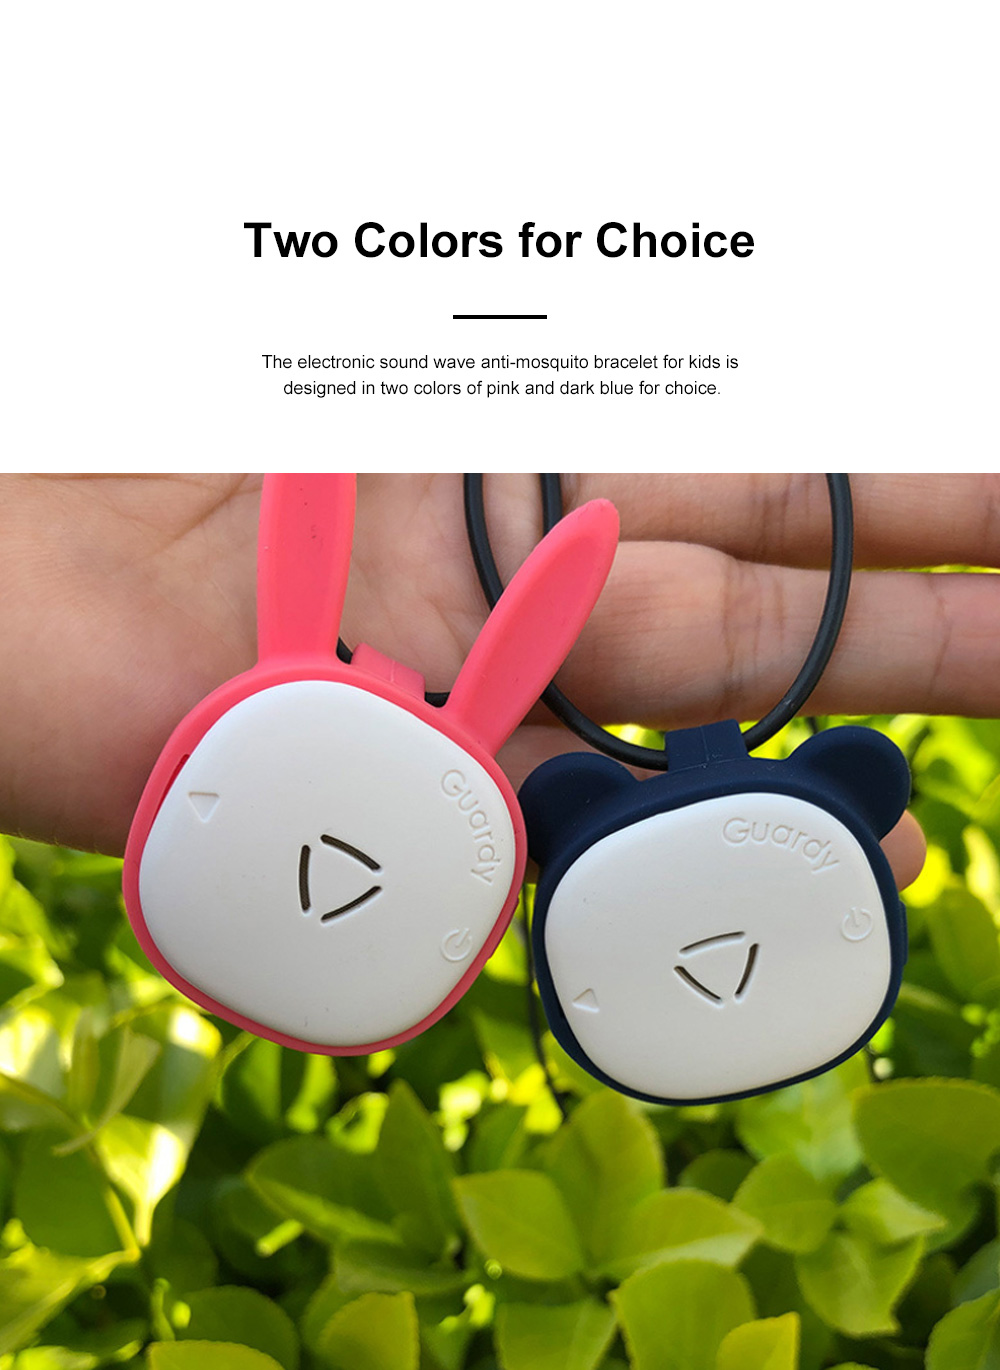 Children's Electronic Anti-mosquito Silicone Wristband for Outdoors Camping Fishing Nontoxic Sound Wave Mosquito Repellent Bracelet for Kids 5